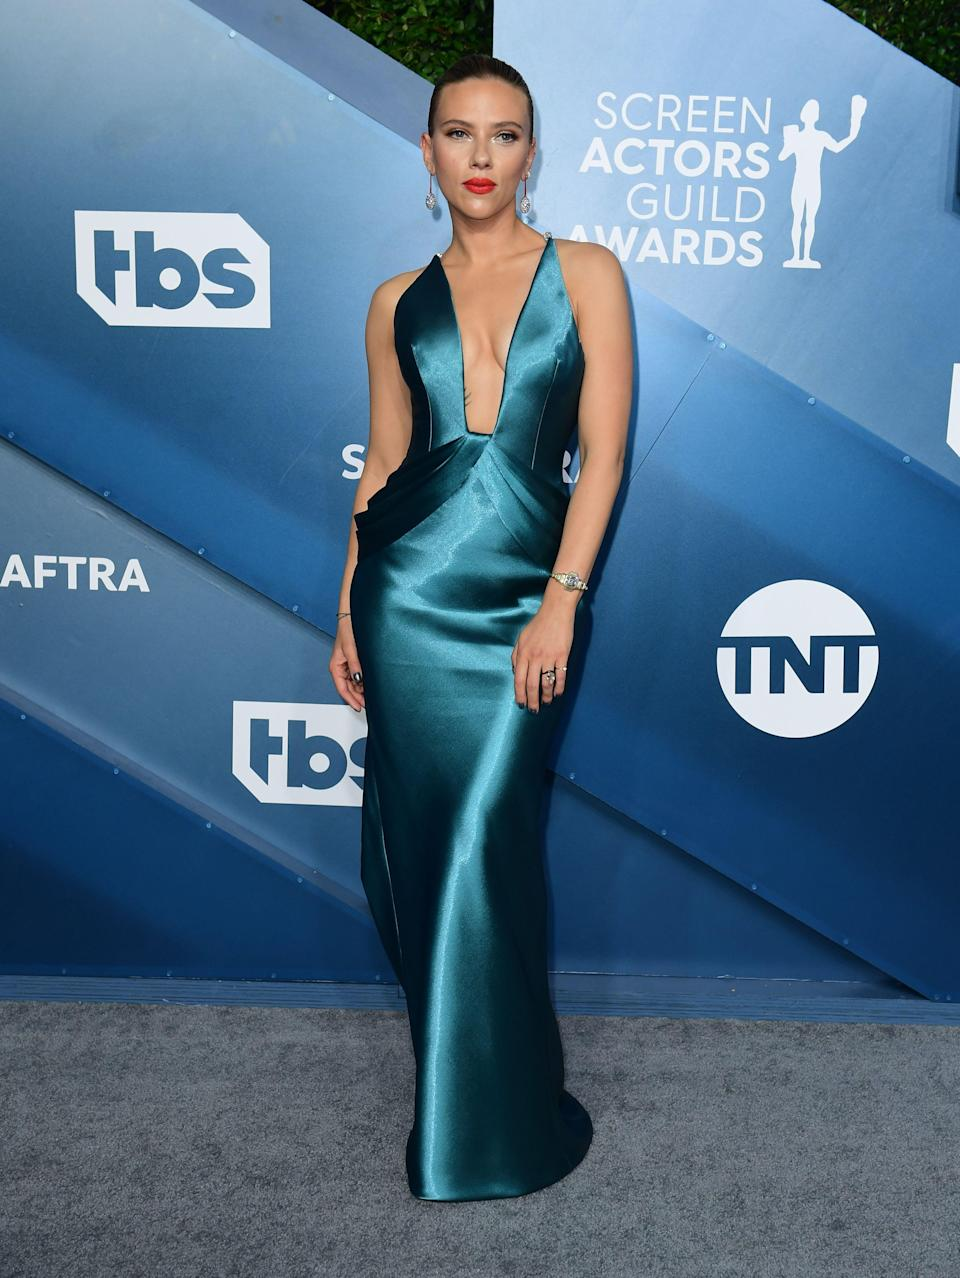 <h2>Scarlett Johansson in Armani Privé</h2><br><em>Marriage Story</em>'s Scarlett Johansson is a tall glass of water in this ocean blue, deep-V gown by Armani Privé.<br>